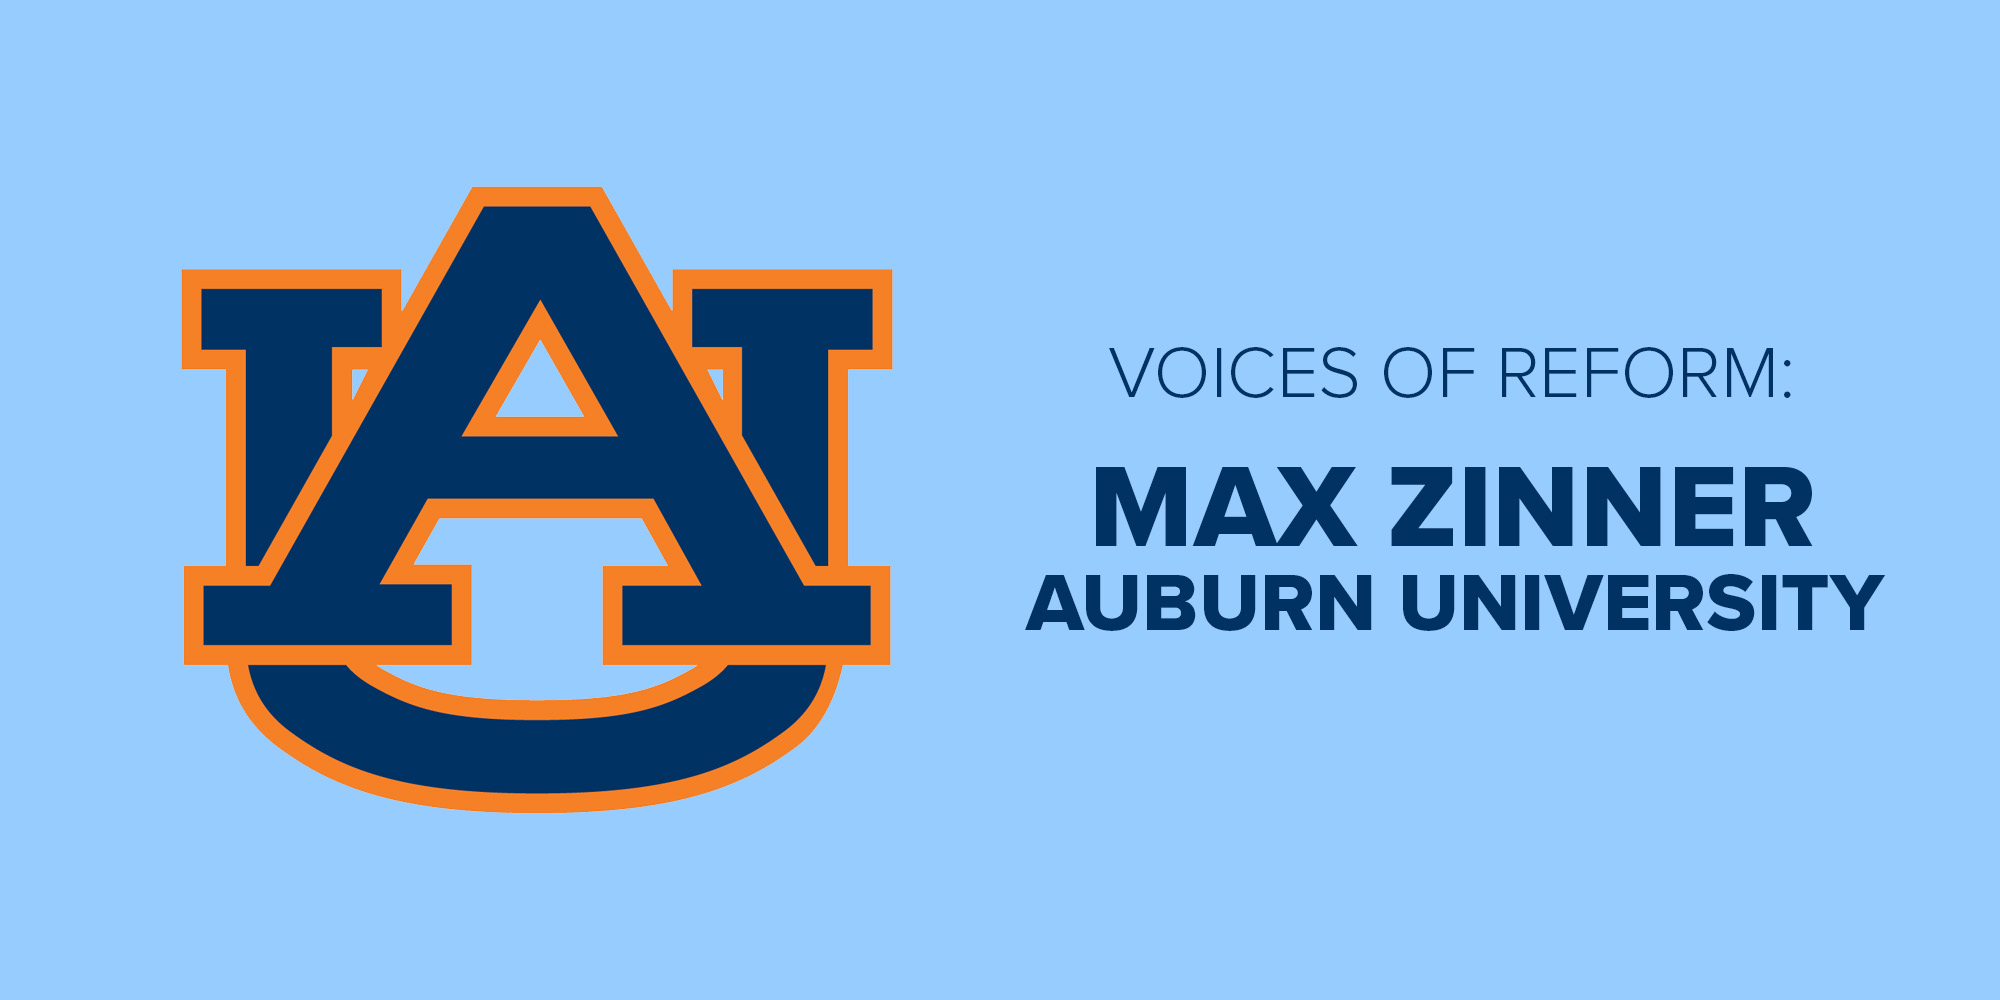 Voices of Reform: Max Zinner, Auburn University